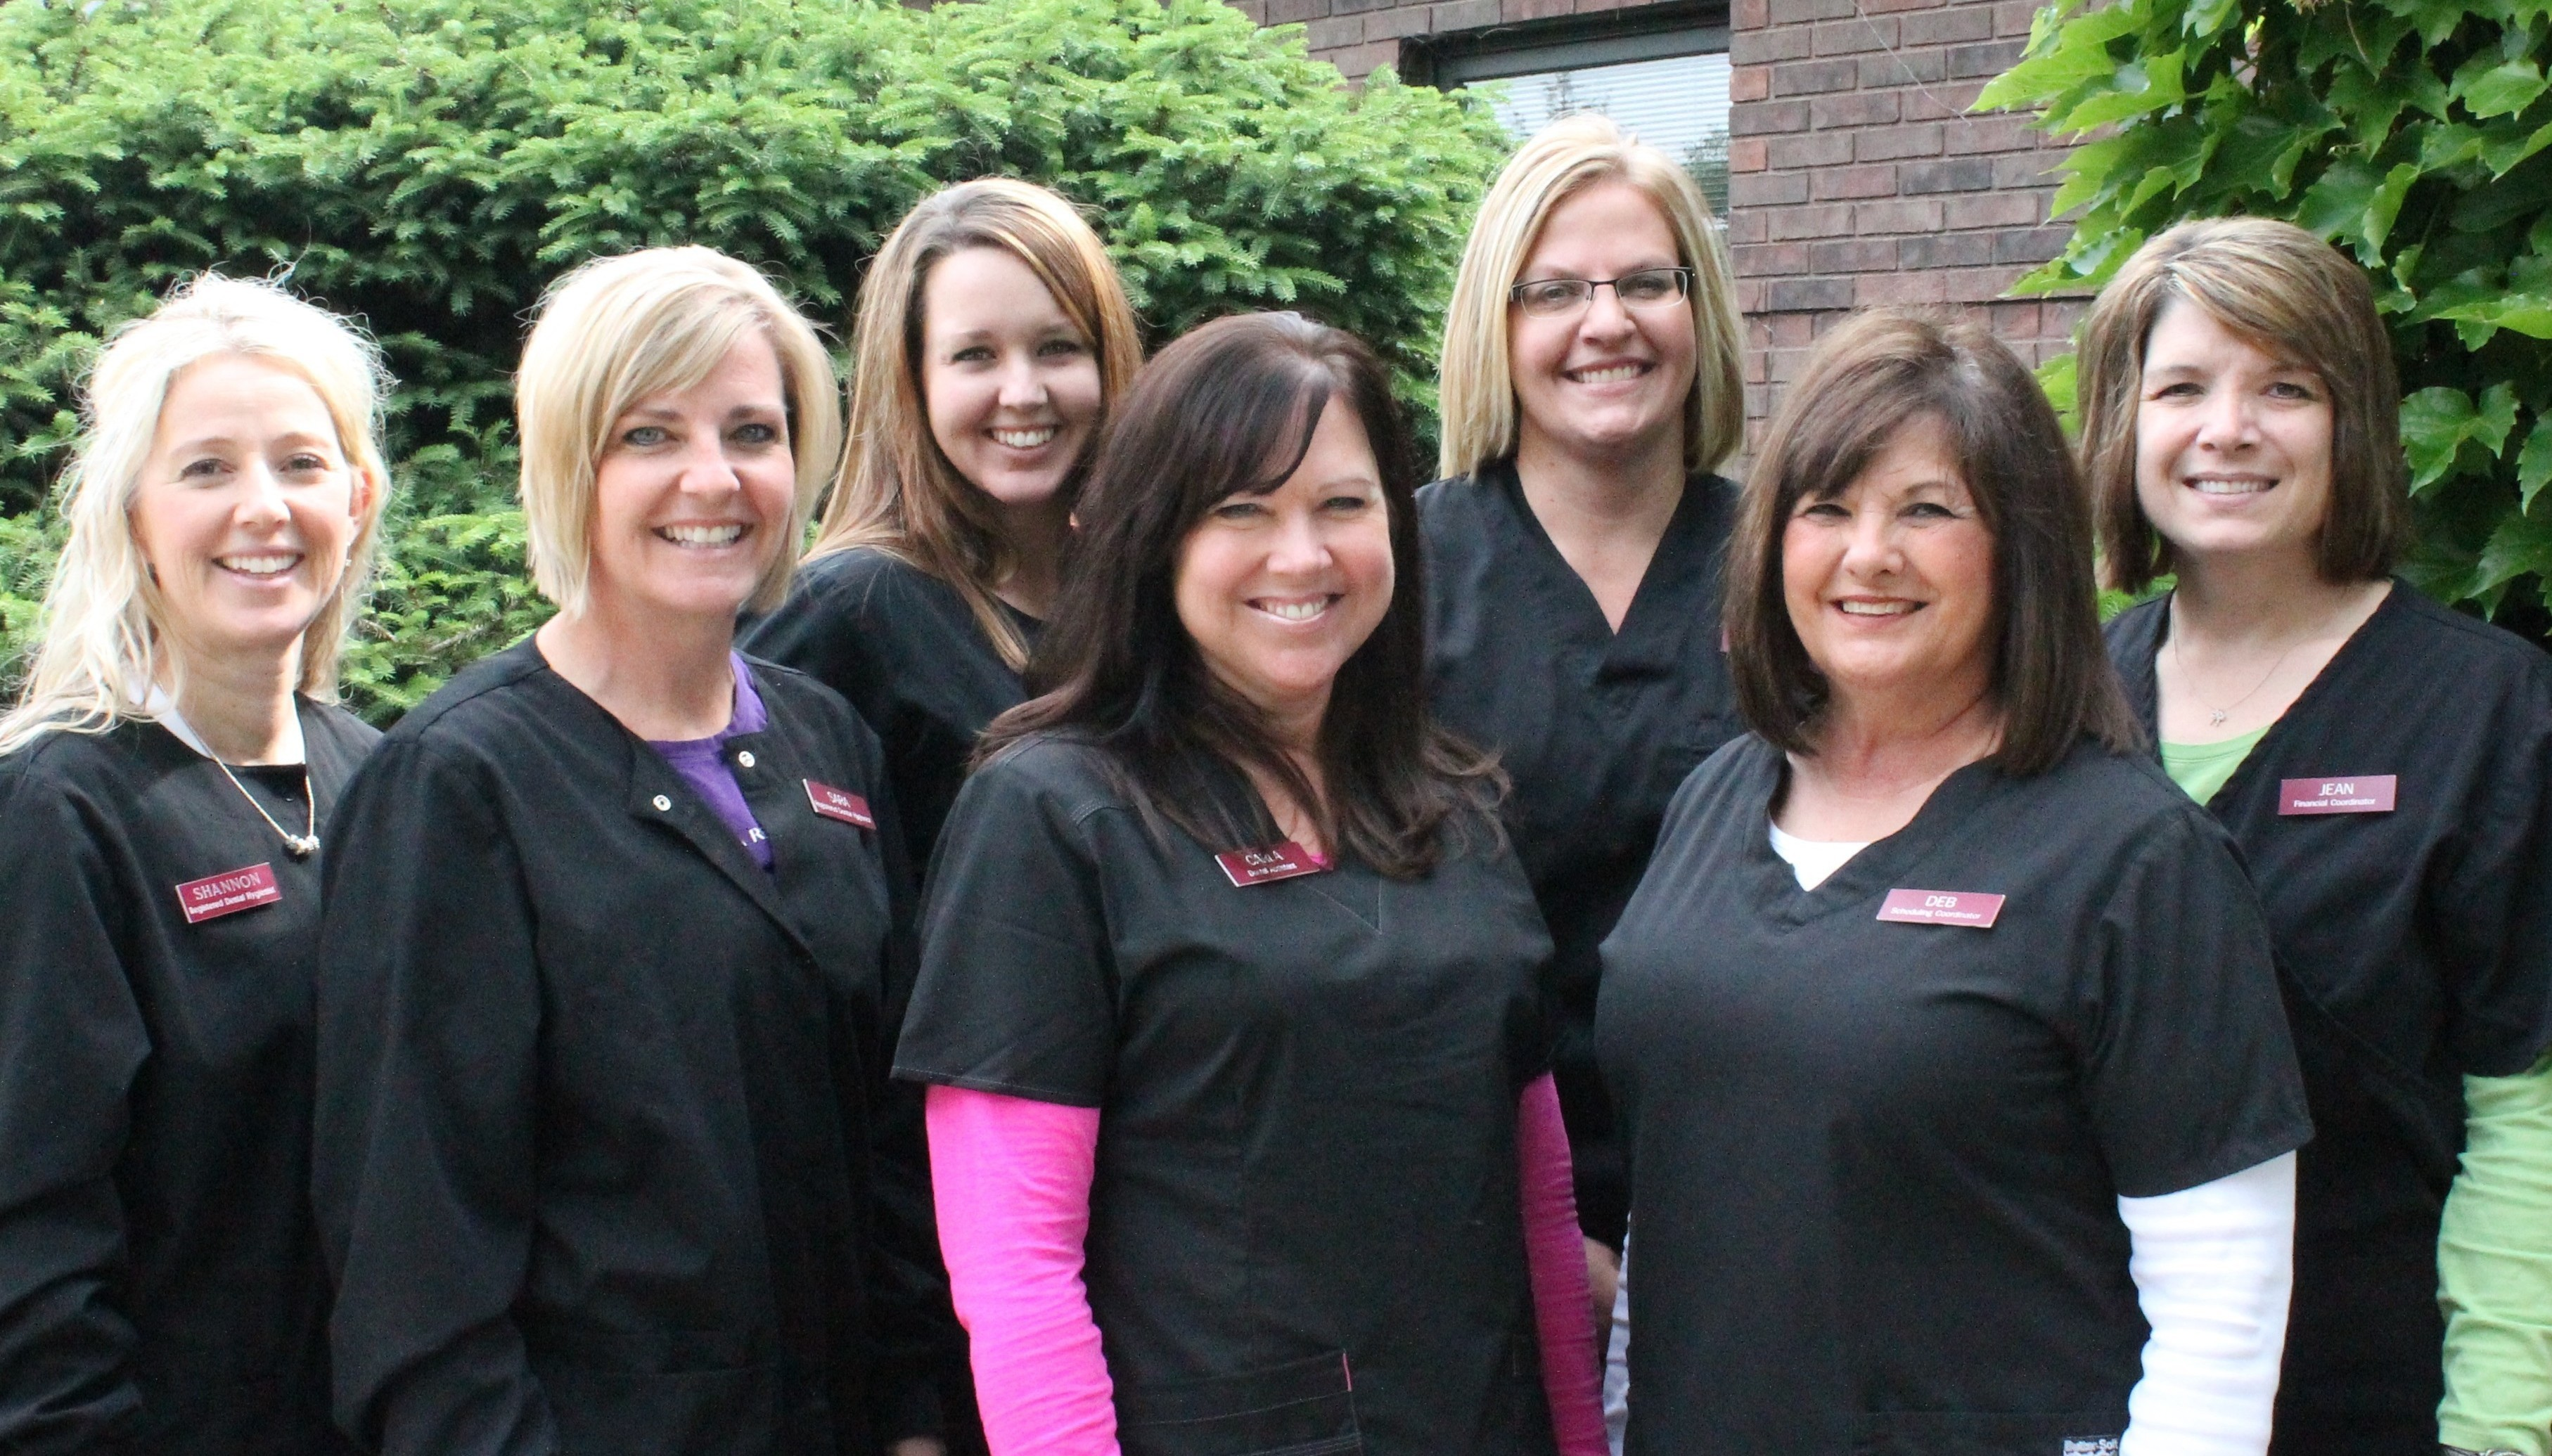 The amazing staff and Nye Avenue Dental!